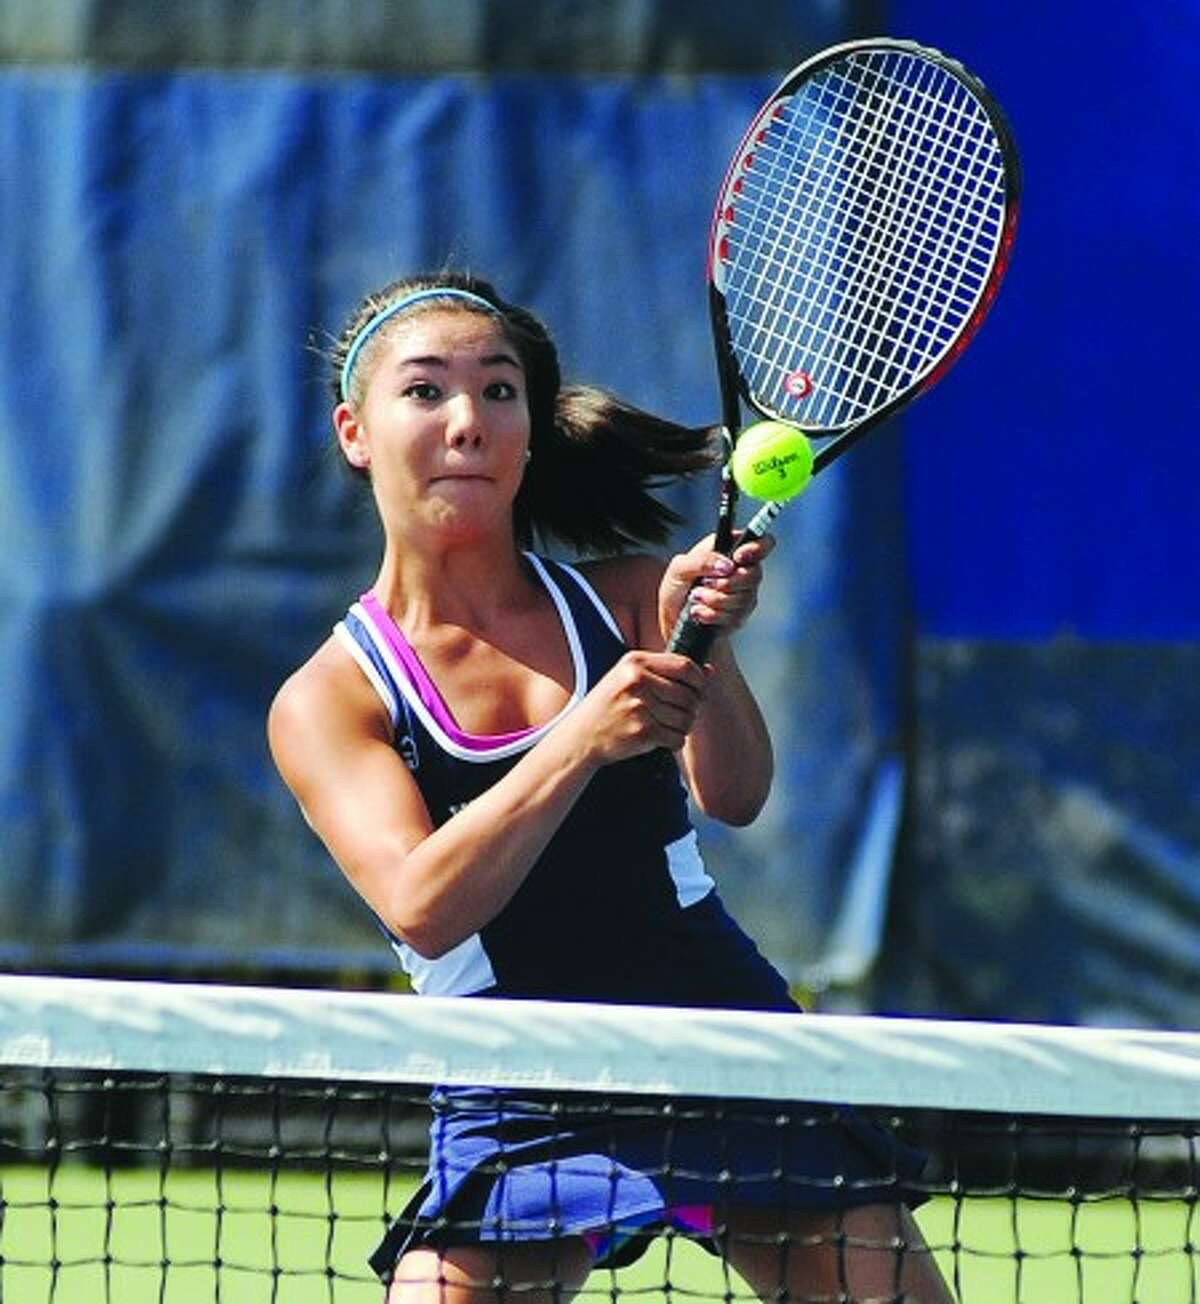 Wilton girls tennis player Amanda Sakamato gets ready for a quick volley return during her first doubles match against New Canaan on Friday. Hour photo/John Nash